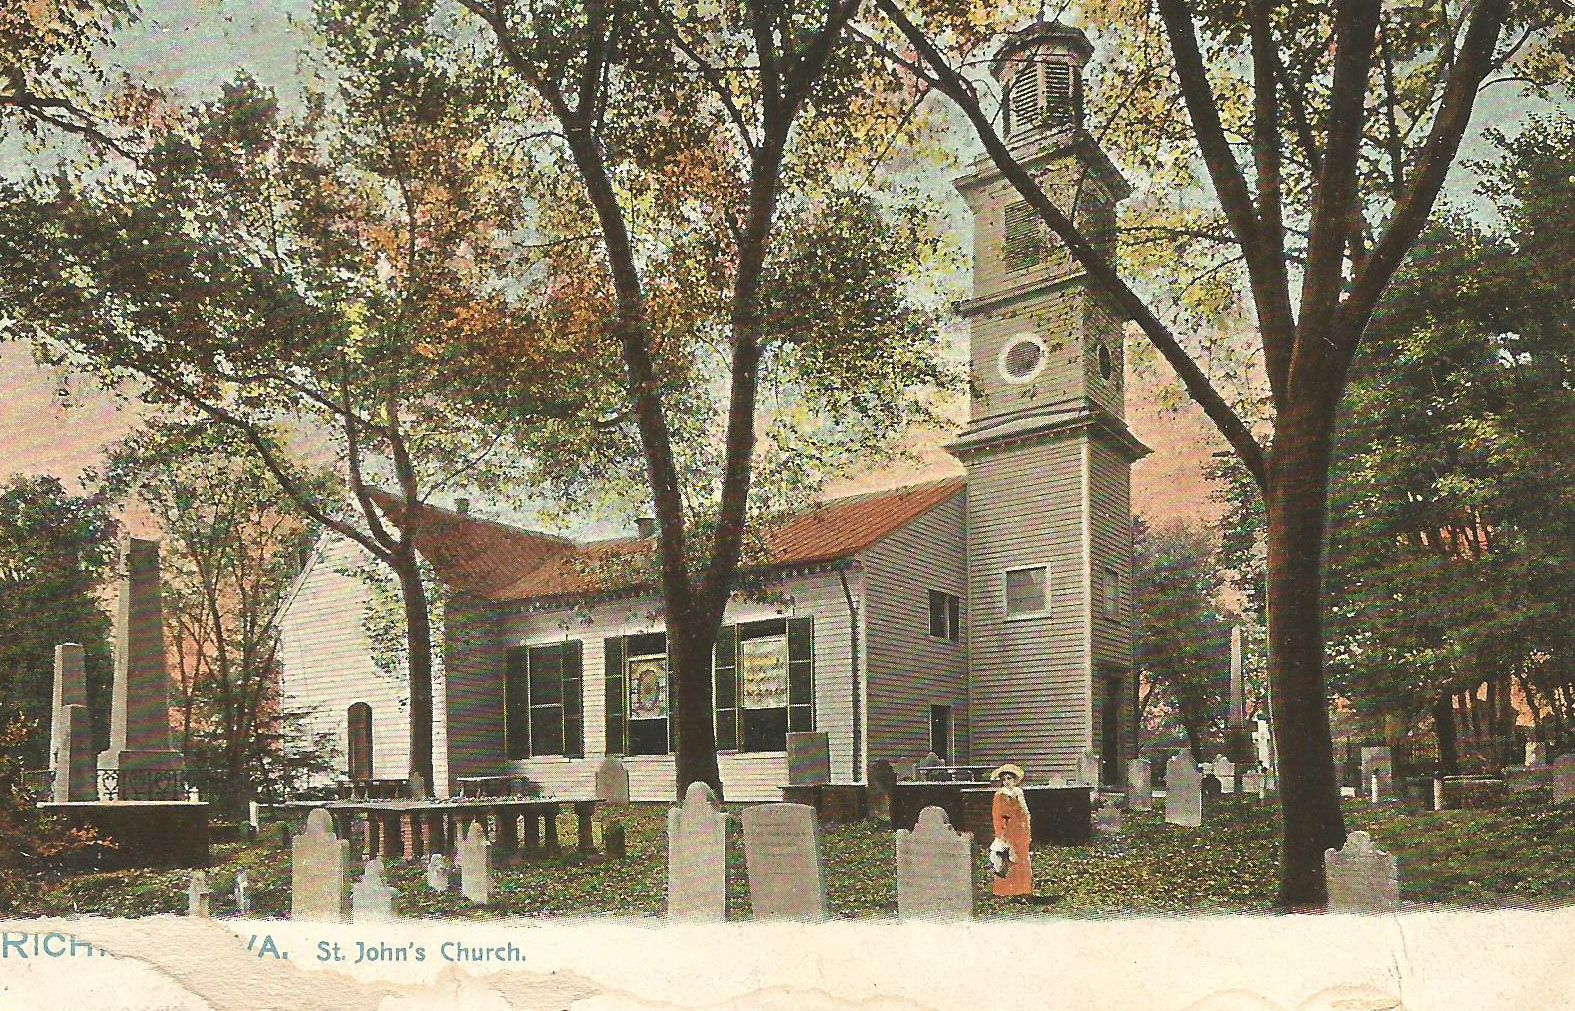 Postcard, c. 1906, shows a standing seam metal roof. Courtesy of St. John's Church Archives